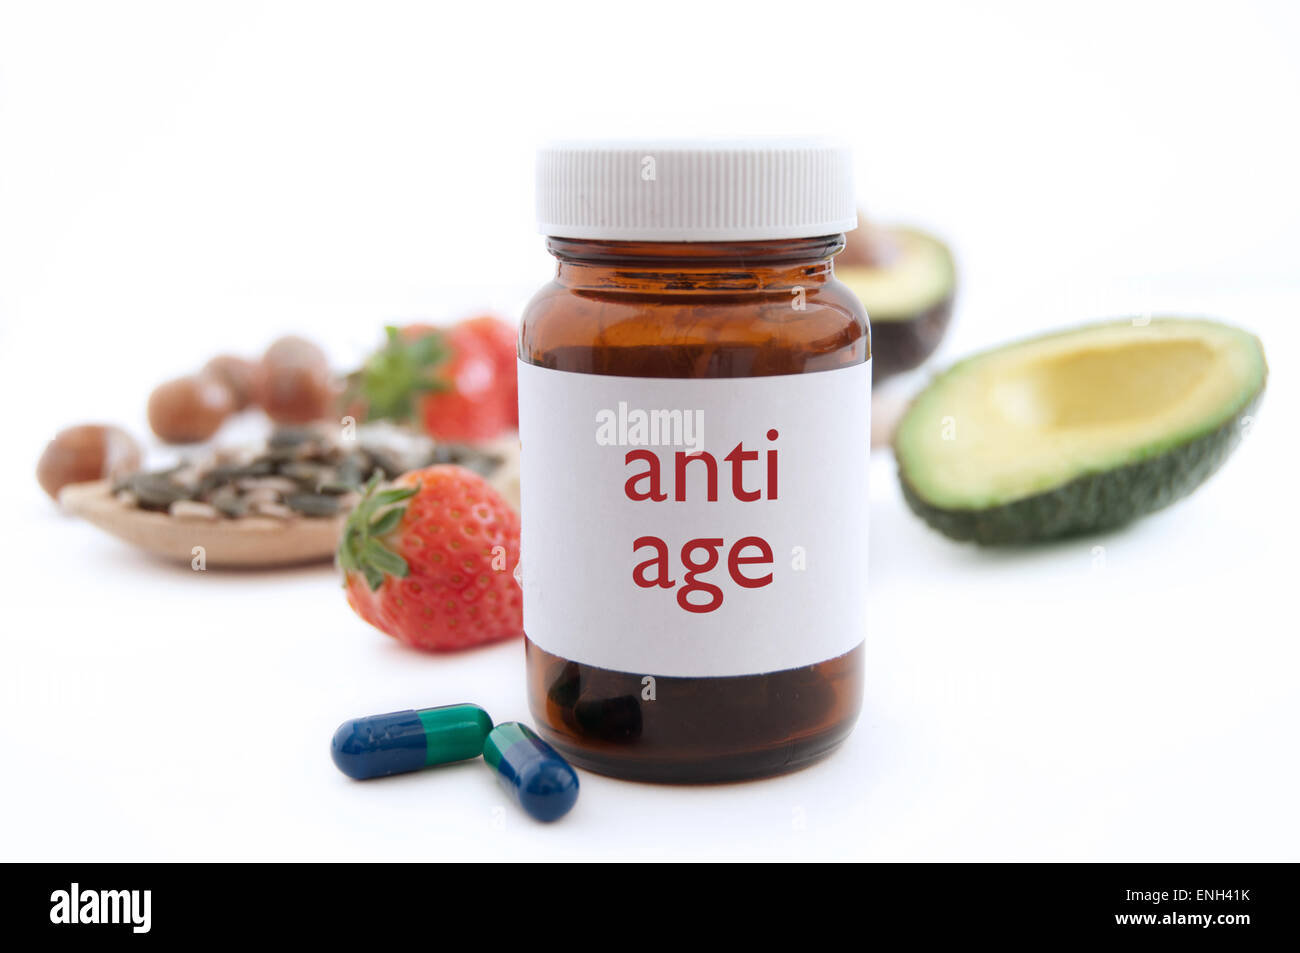 Medecine jar with anti aging pills surrounded by nutritious superfoods including avocado, pumpkin seeds and berries - Stock Image